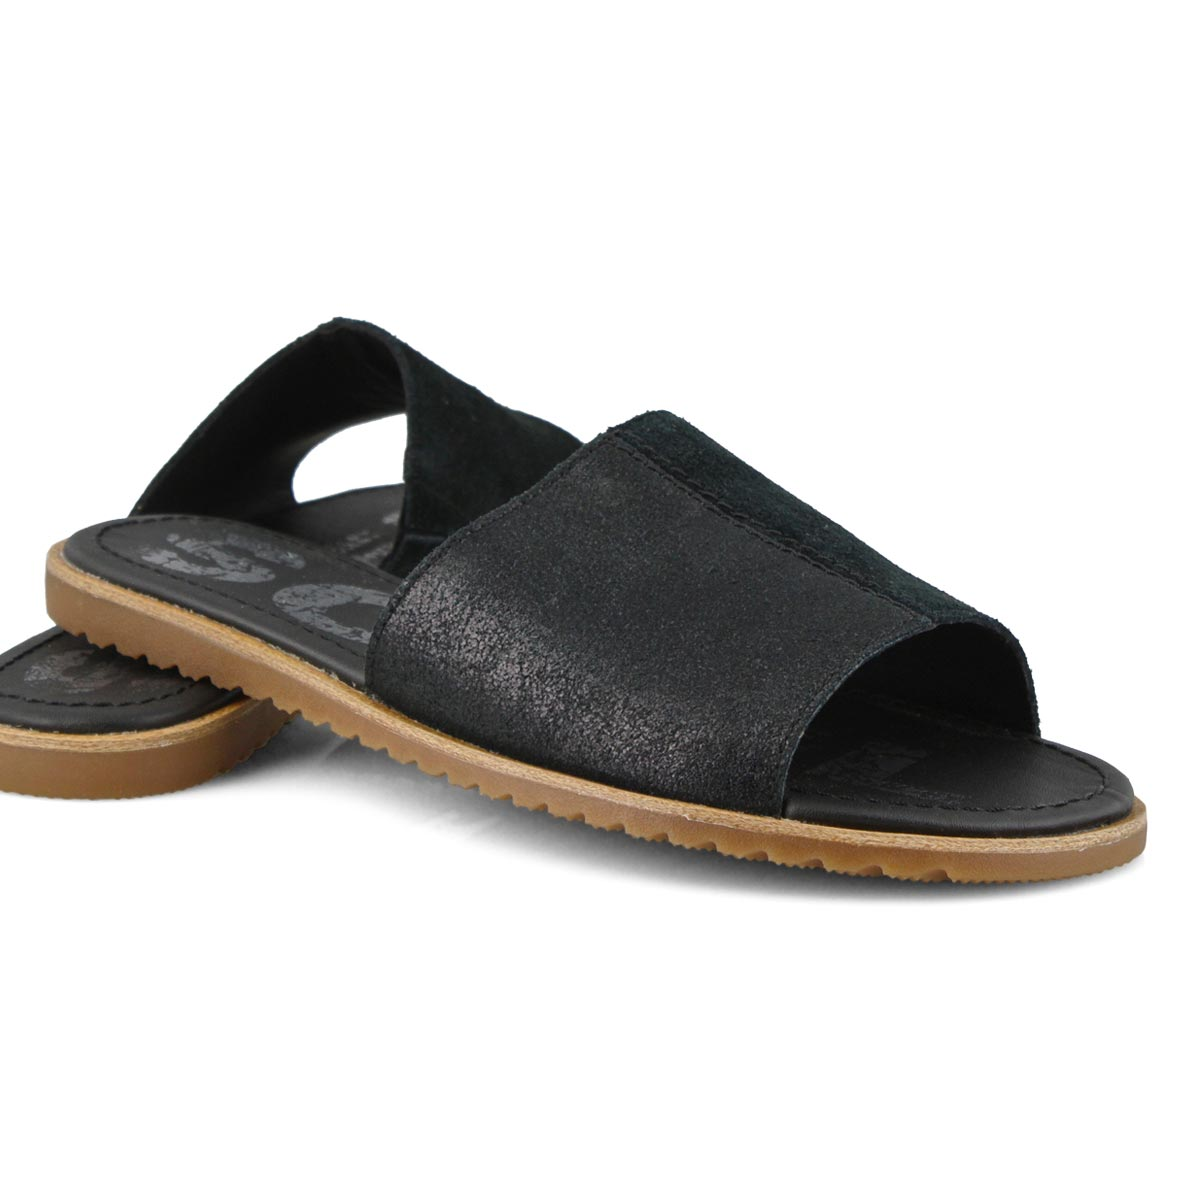 Lds Ella Block black casual slide sandal